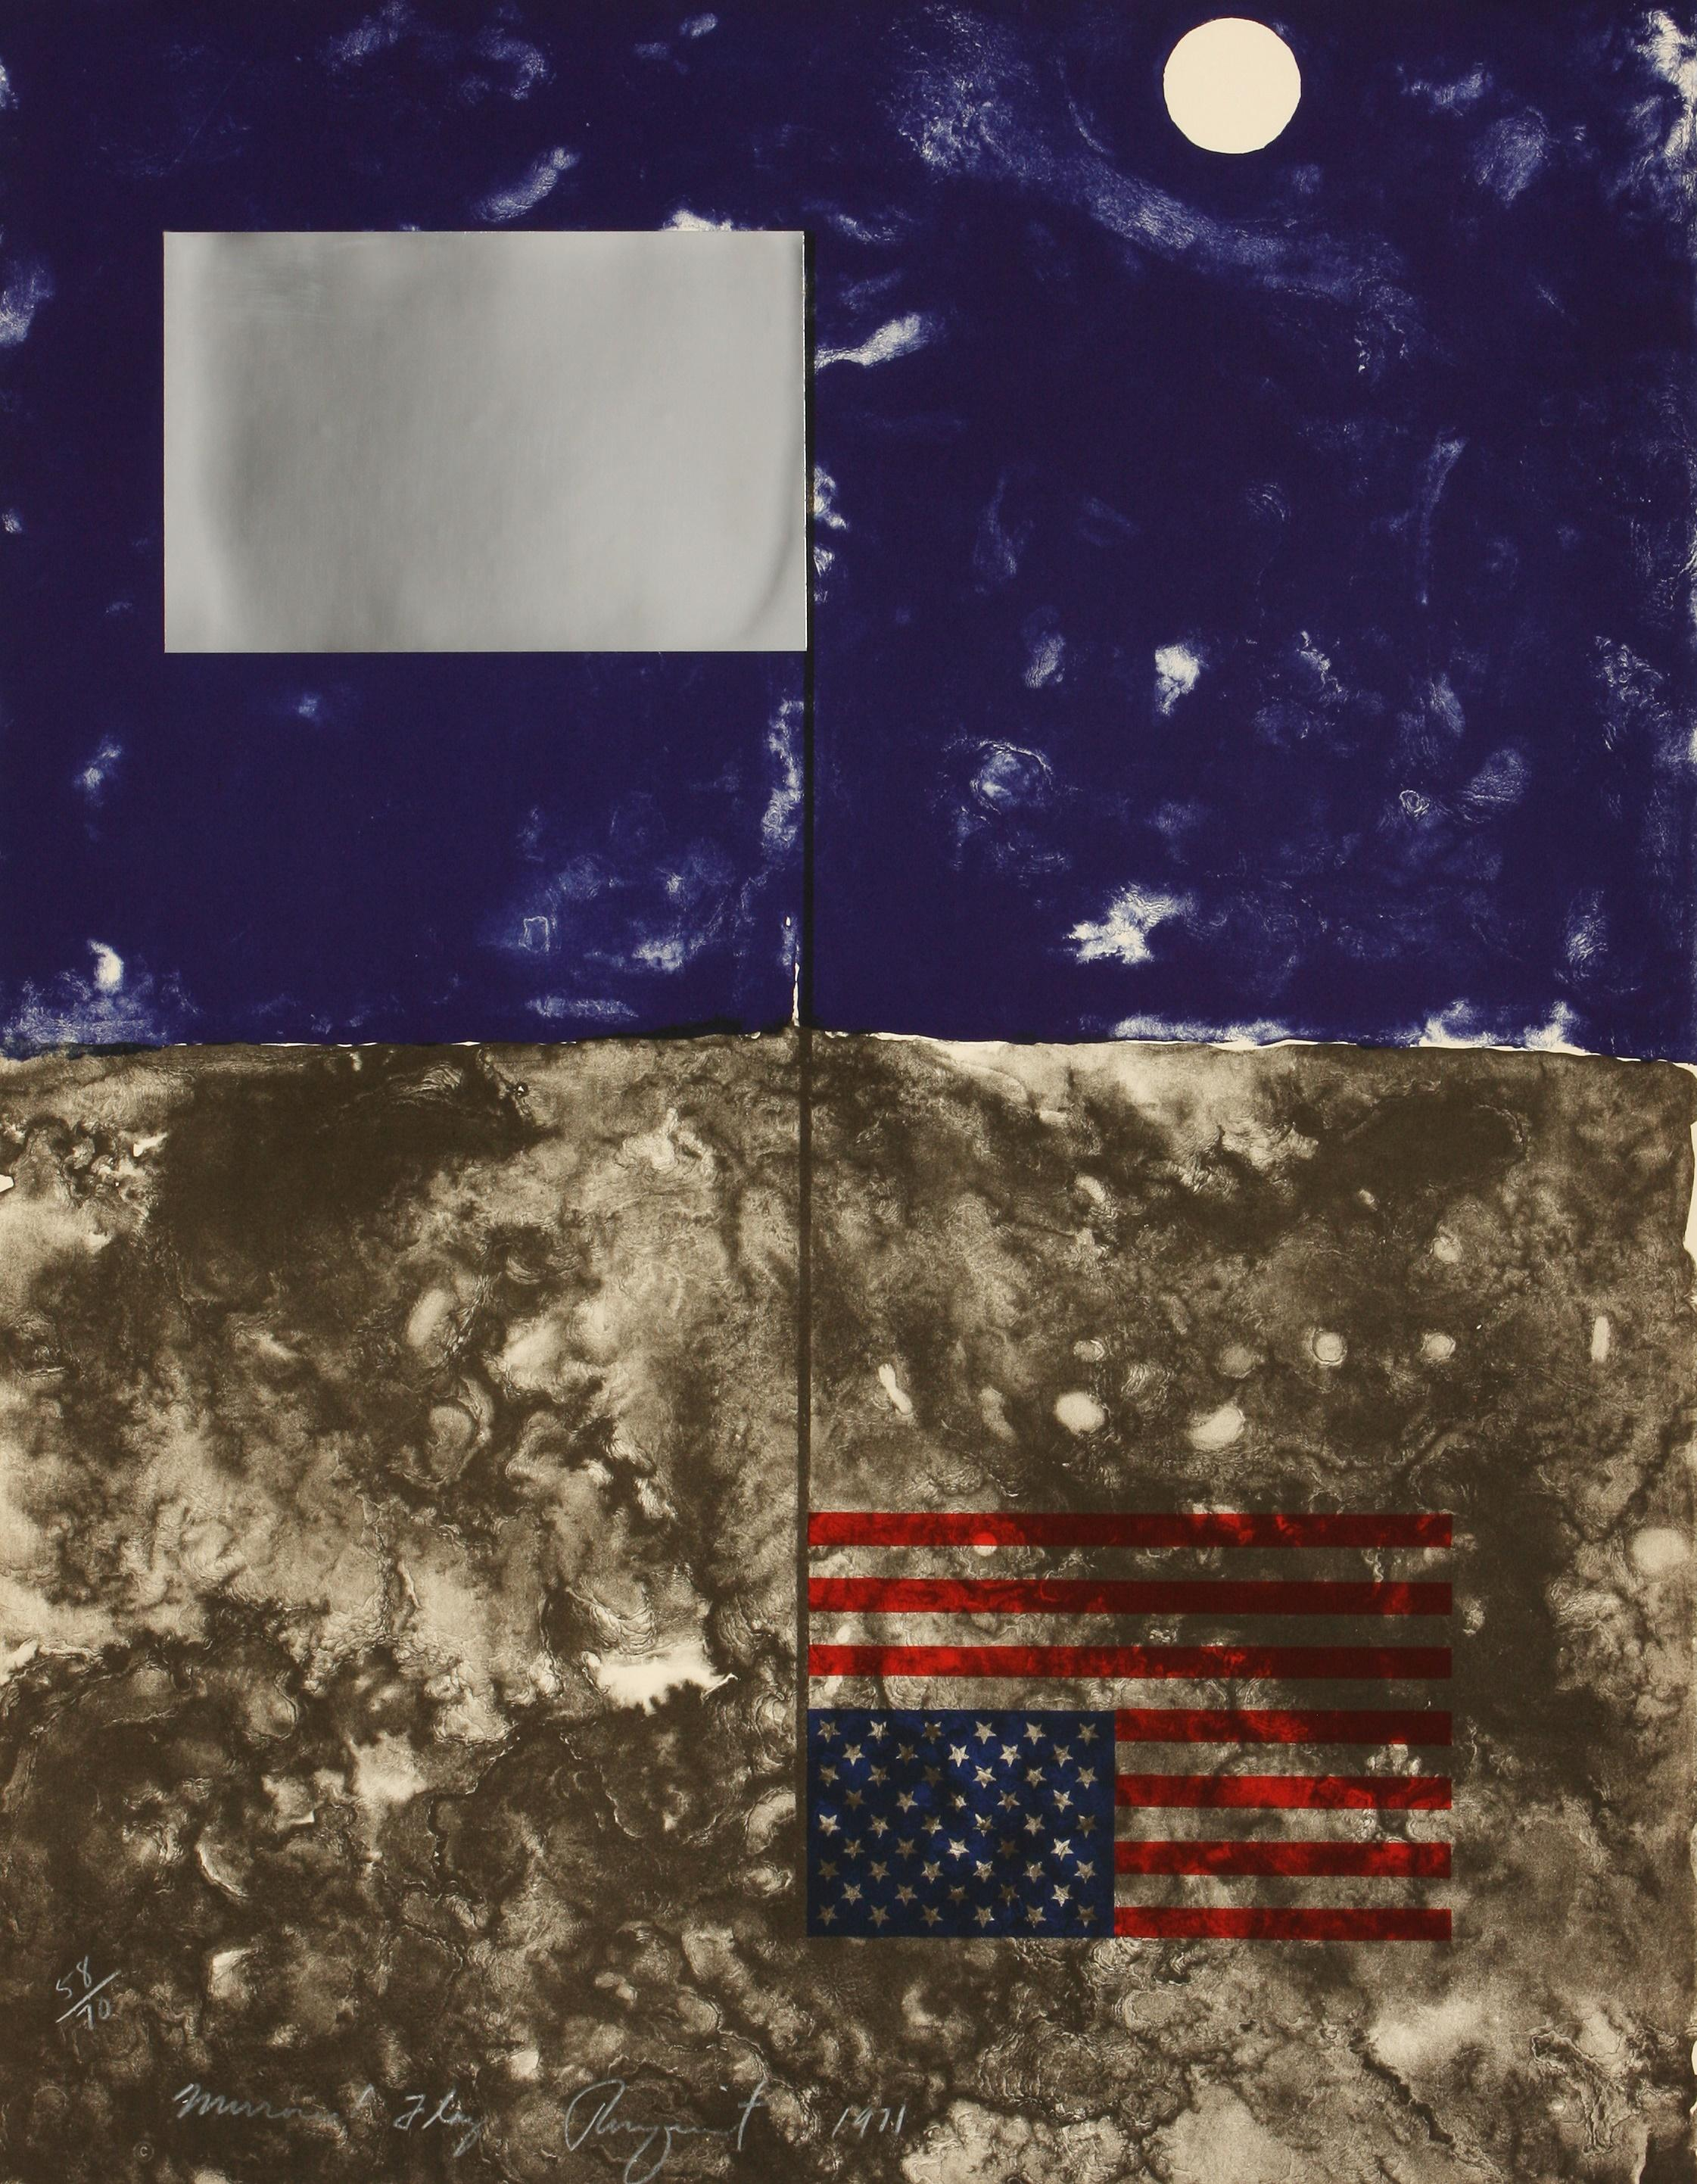 James Rosenquist (America 1933-2017) Mirrored Flag (from the Cold Light series), 1971